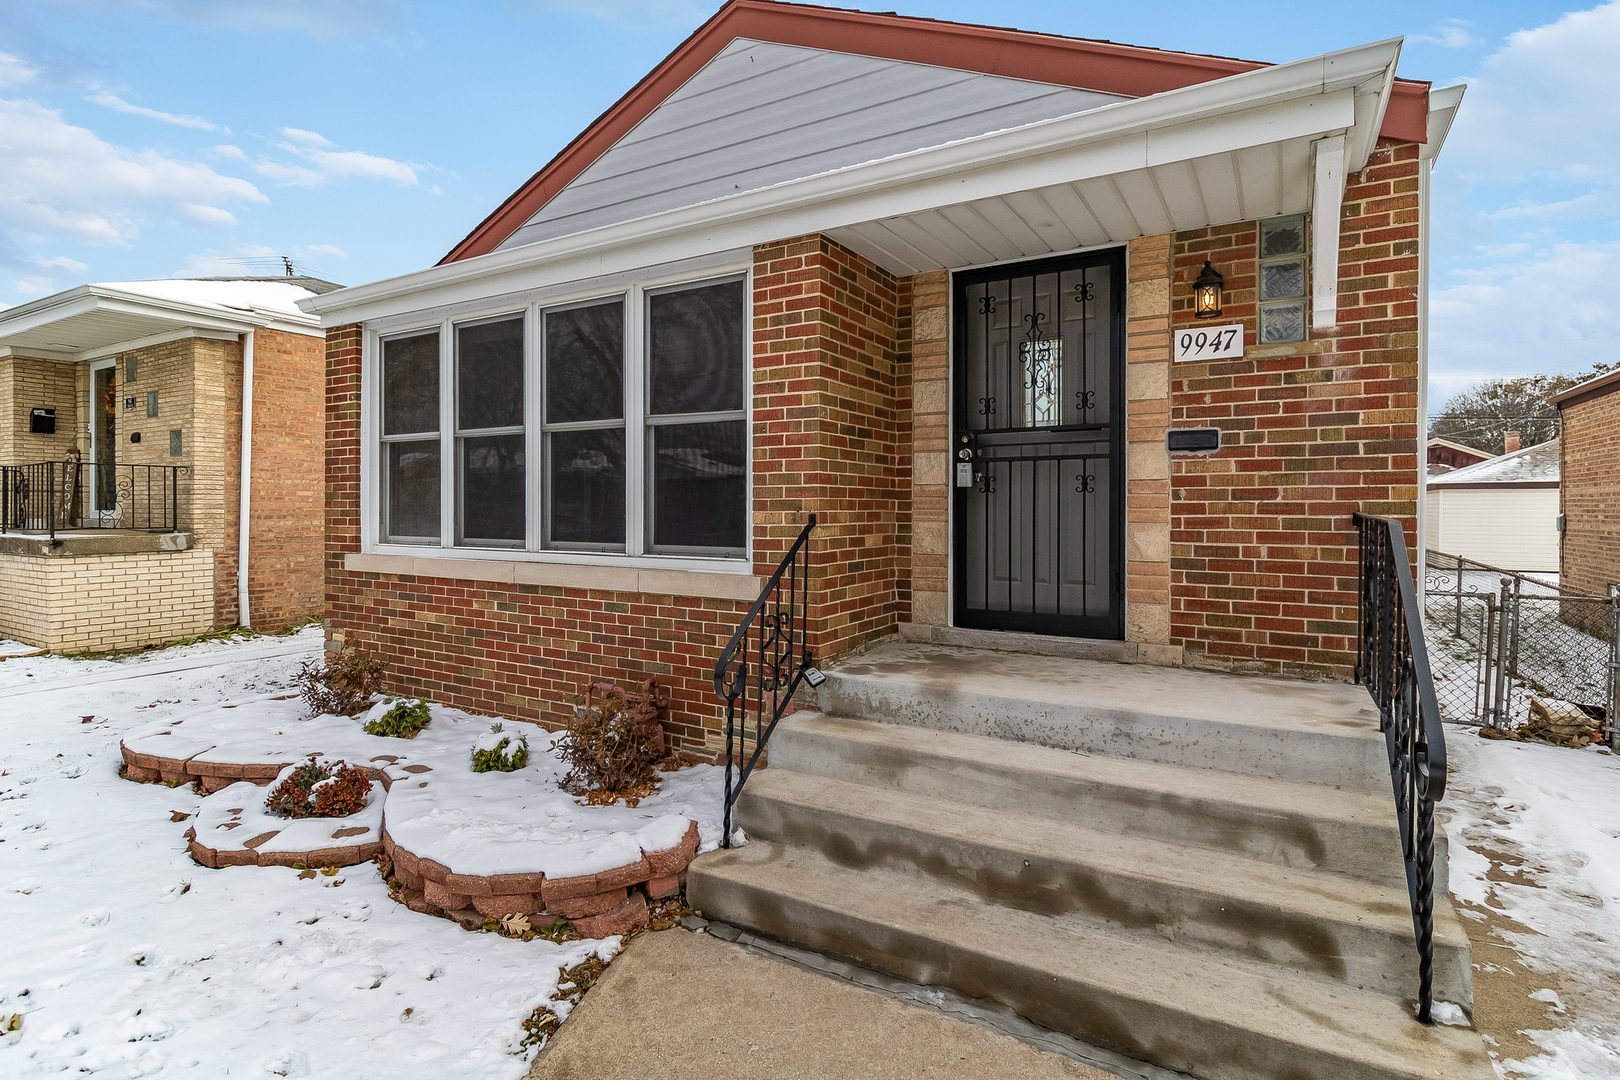 9947 South Fairfield Avenue, Beverly-Chicago in Cook County, IL 60655 Home for Sale